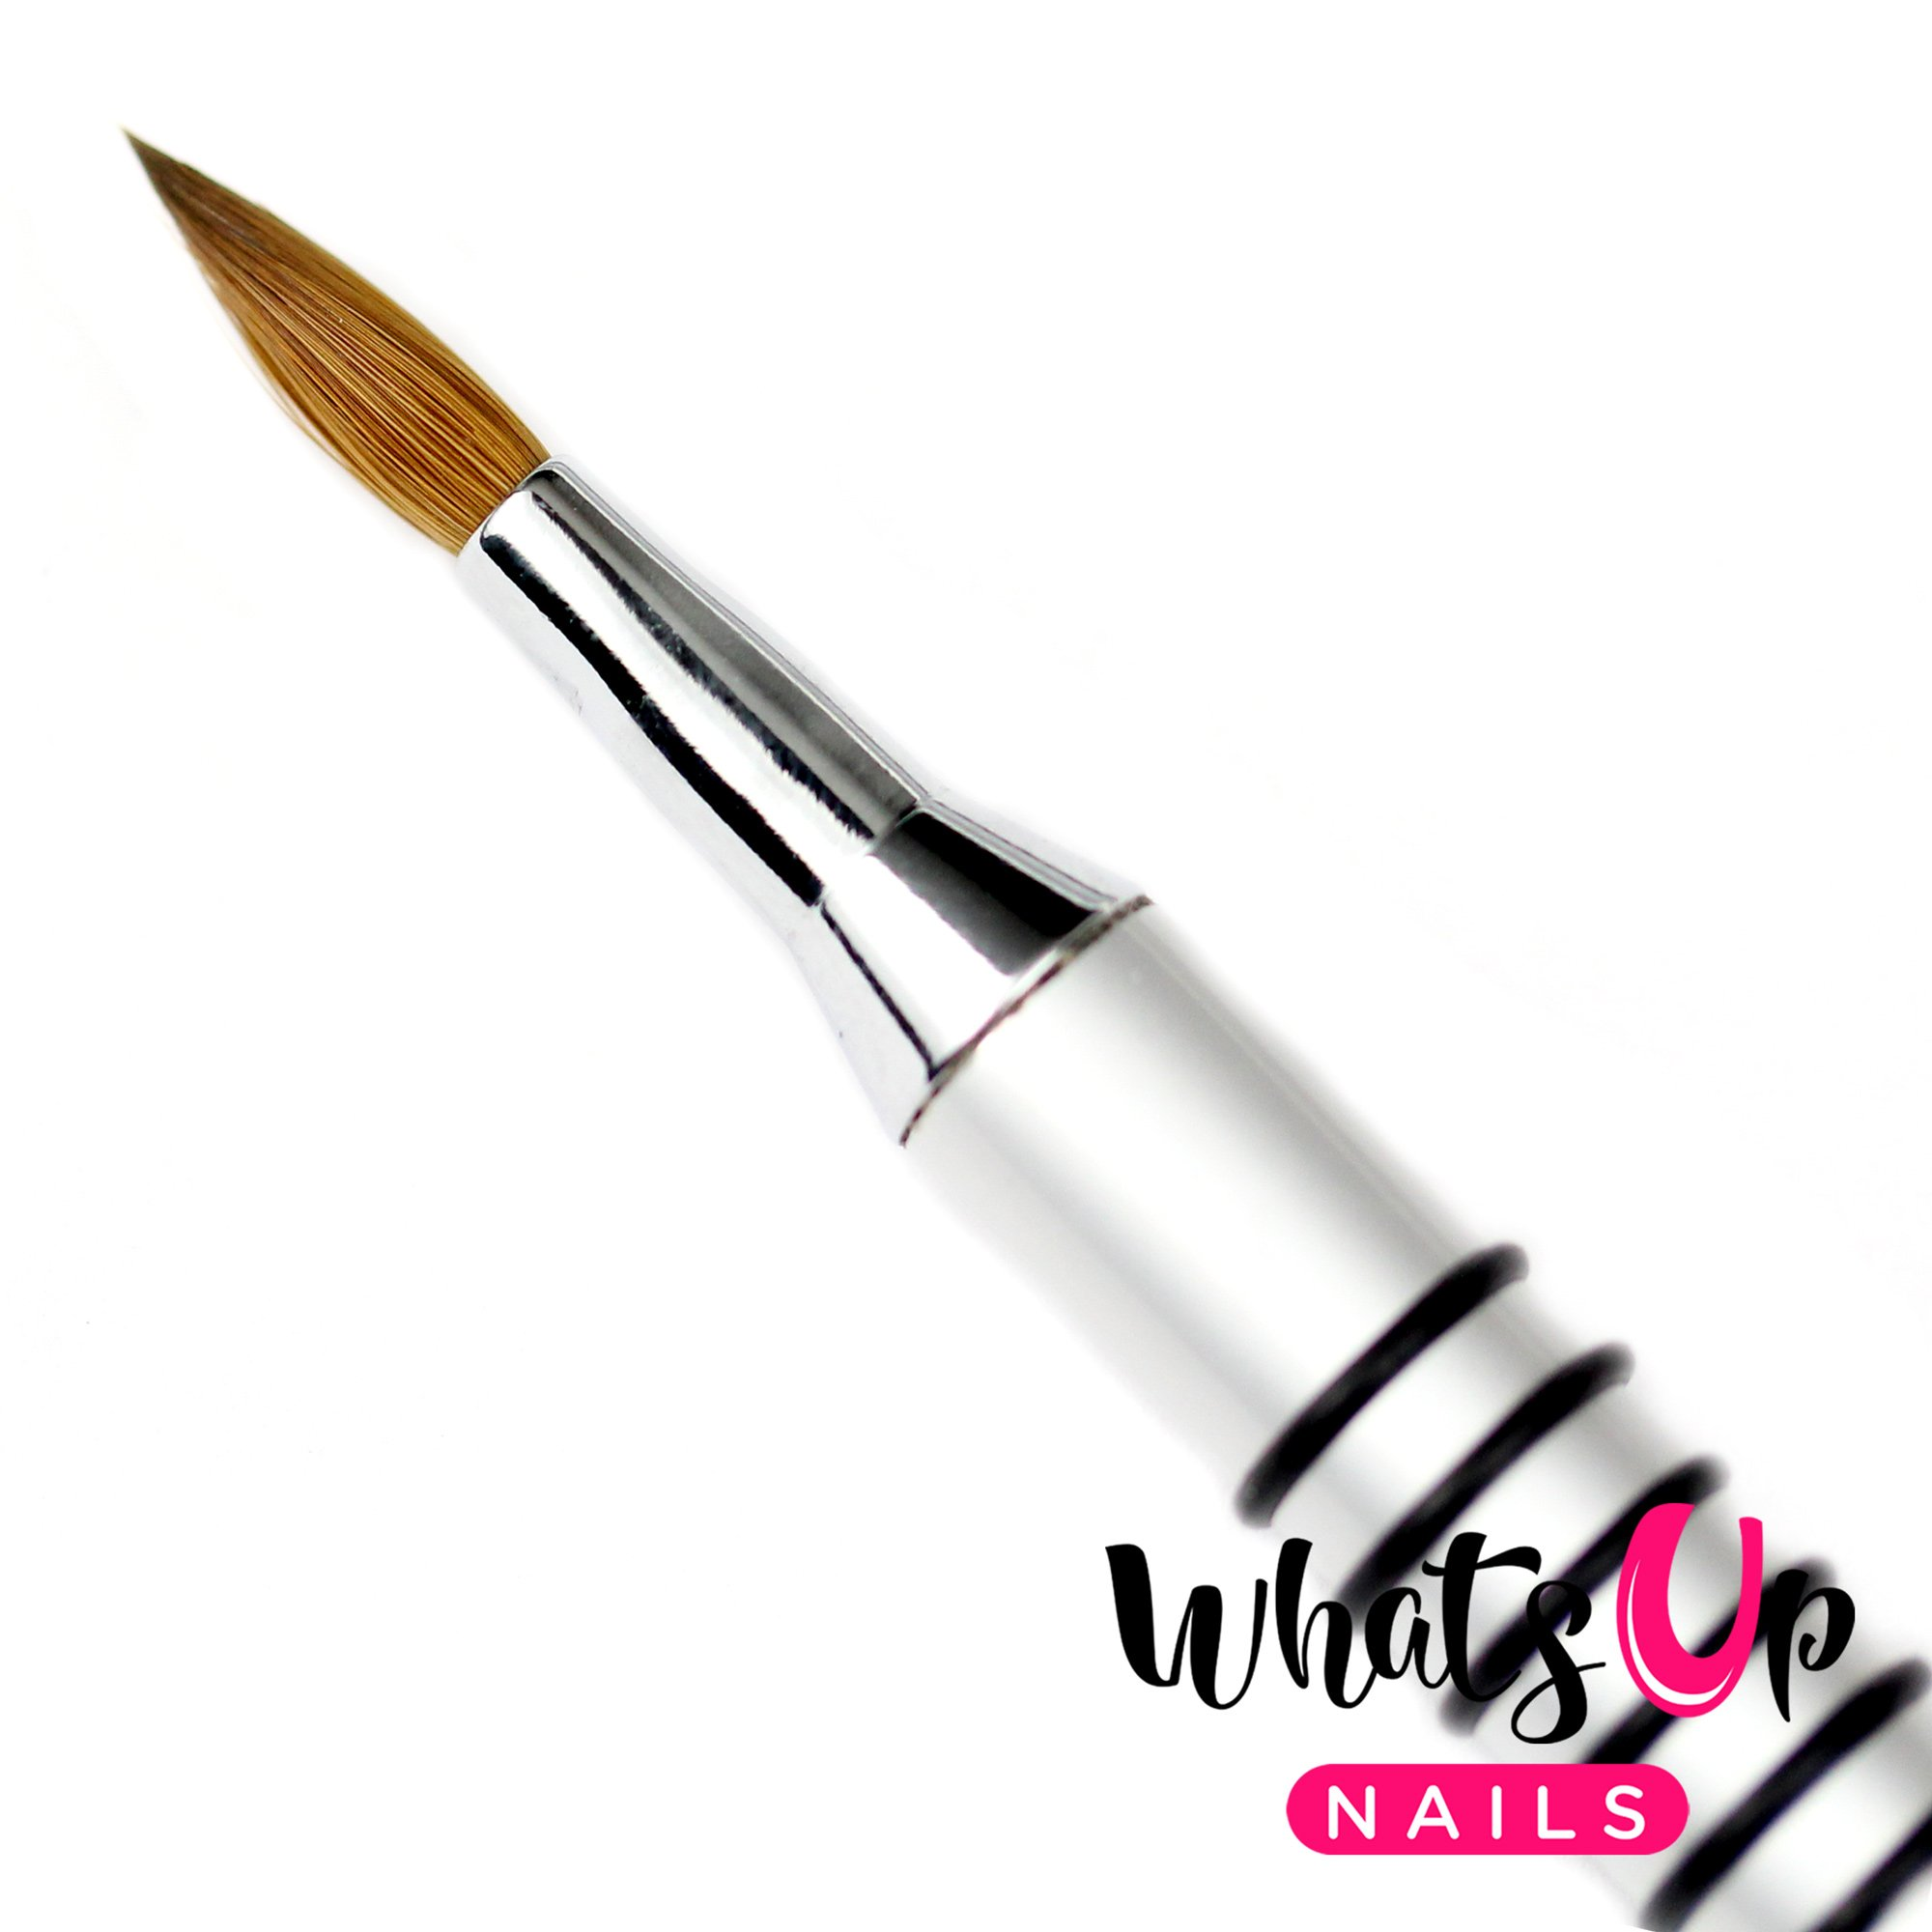 Whats Up Nails - Pure Color #5 3D Sculpture Brush